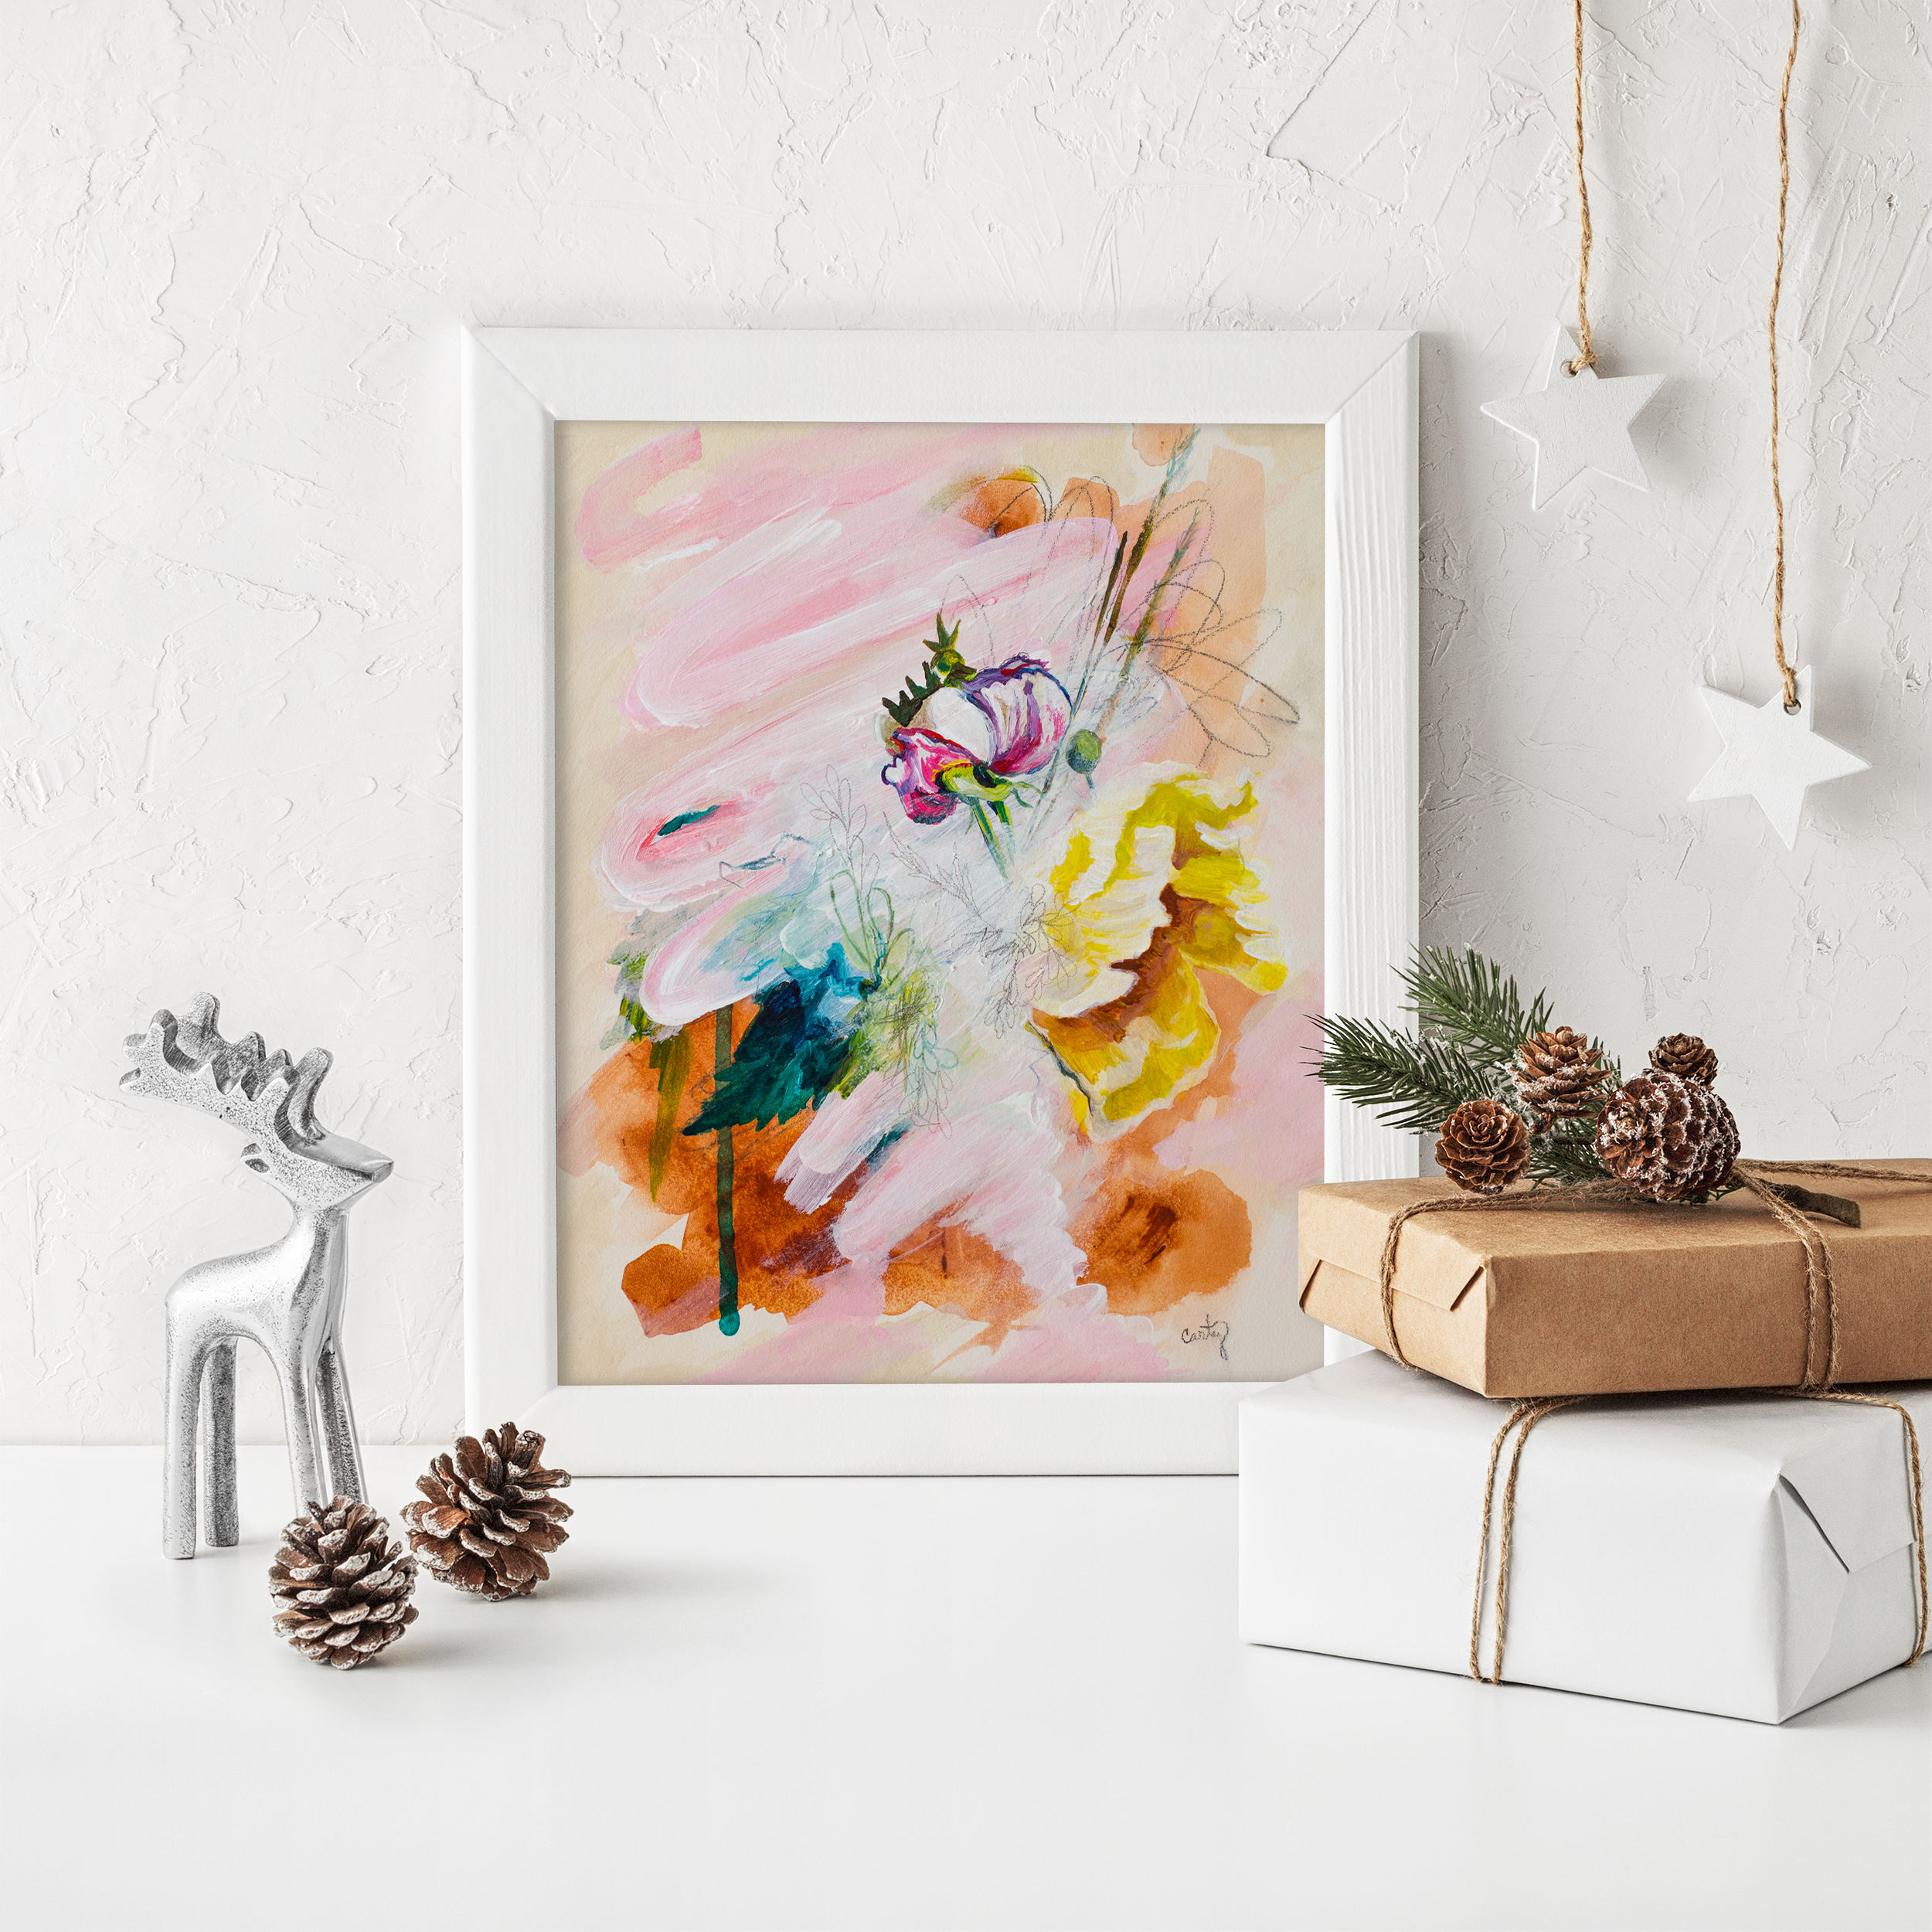 abstract floral art print by Megan Carty